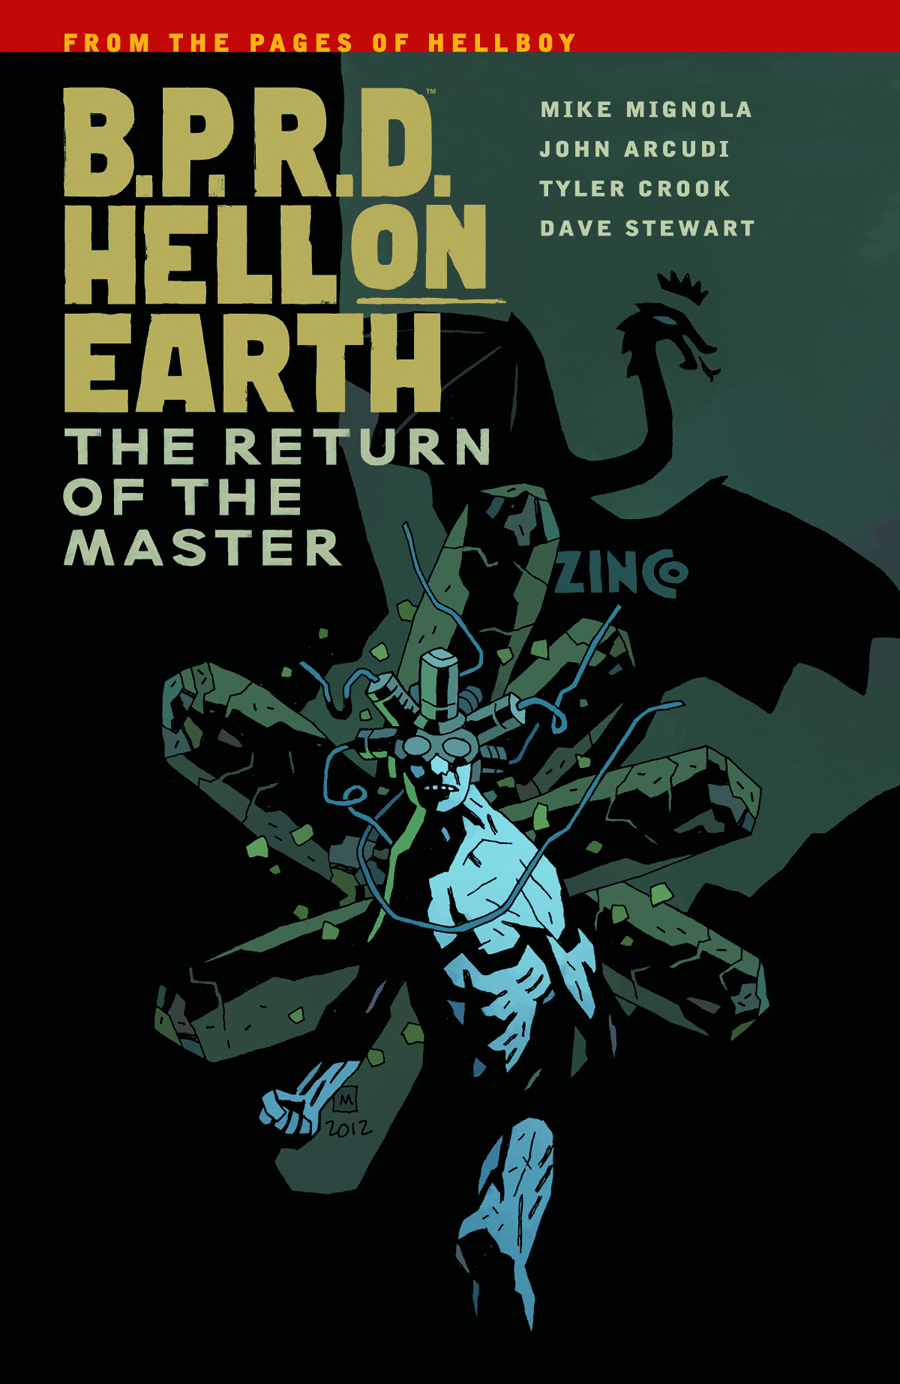 BPRD HELL ON EARTH TP VOL 06 RETURN OF MASTER (APR130044)